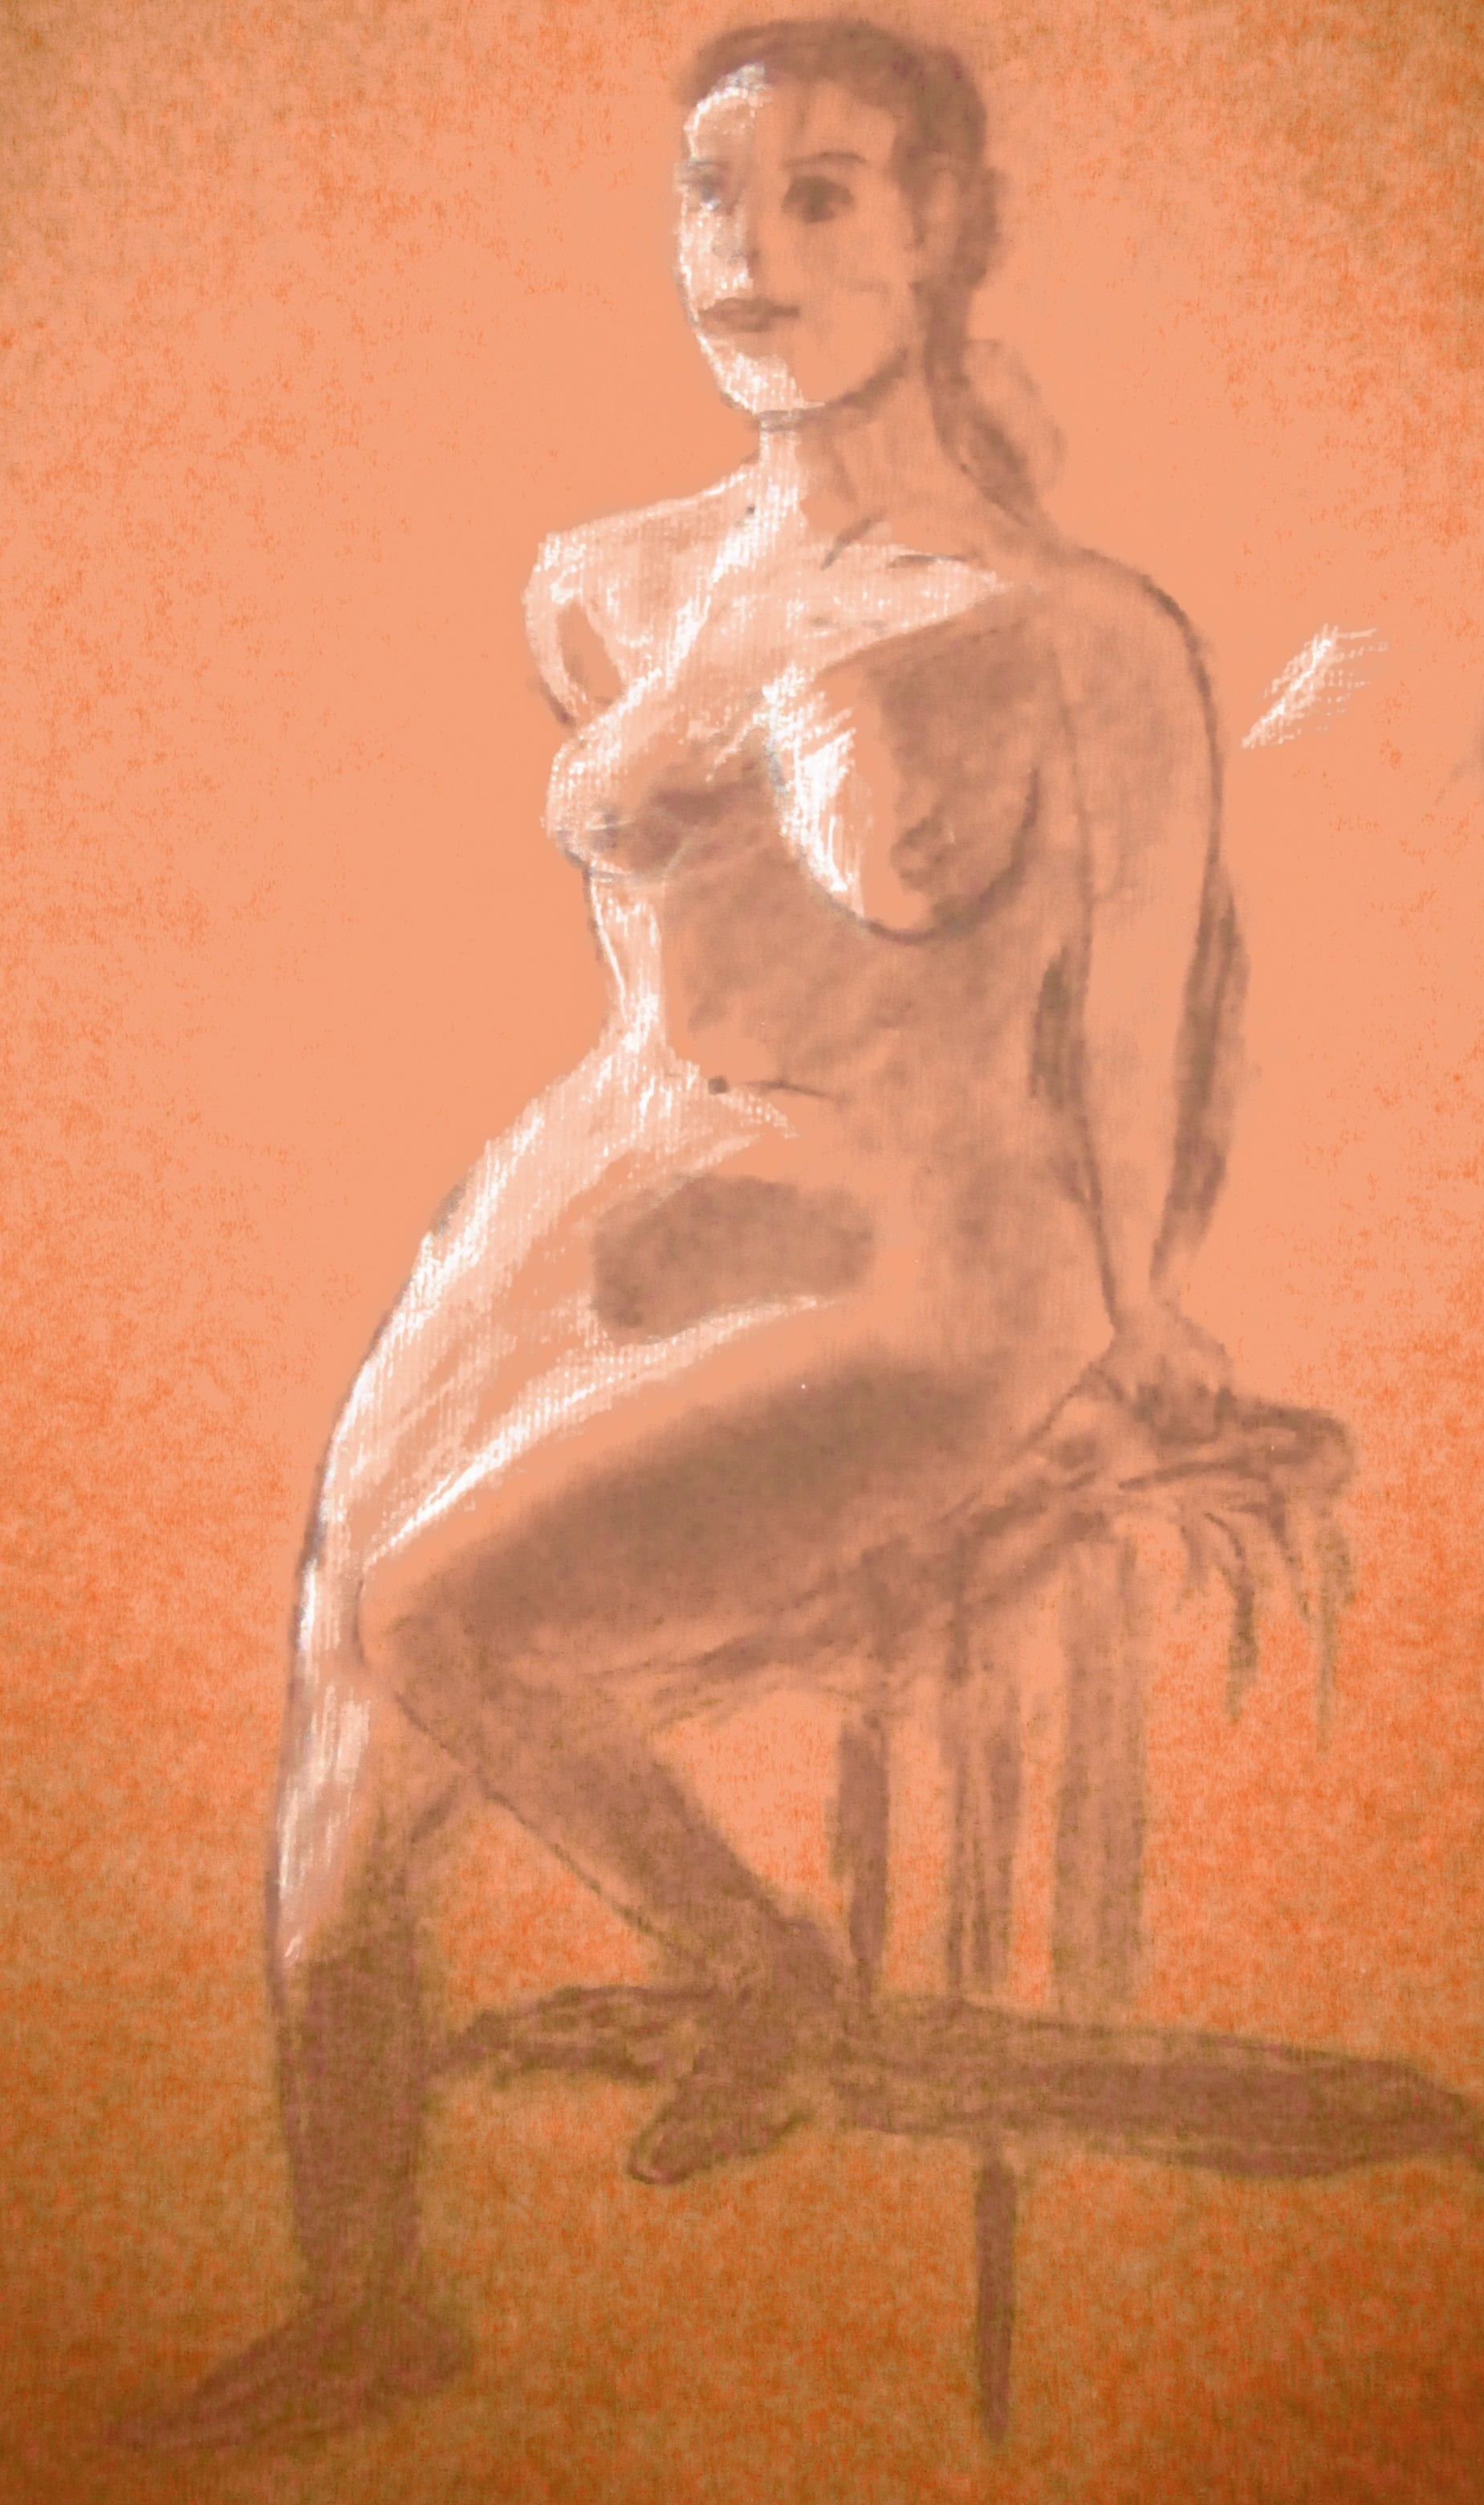 A drawing of a naked woman sitting on a stool, looking straight ahead. Orange background, earthy tones.